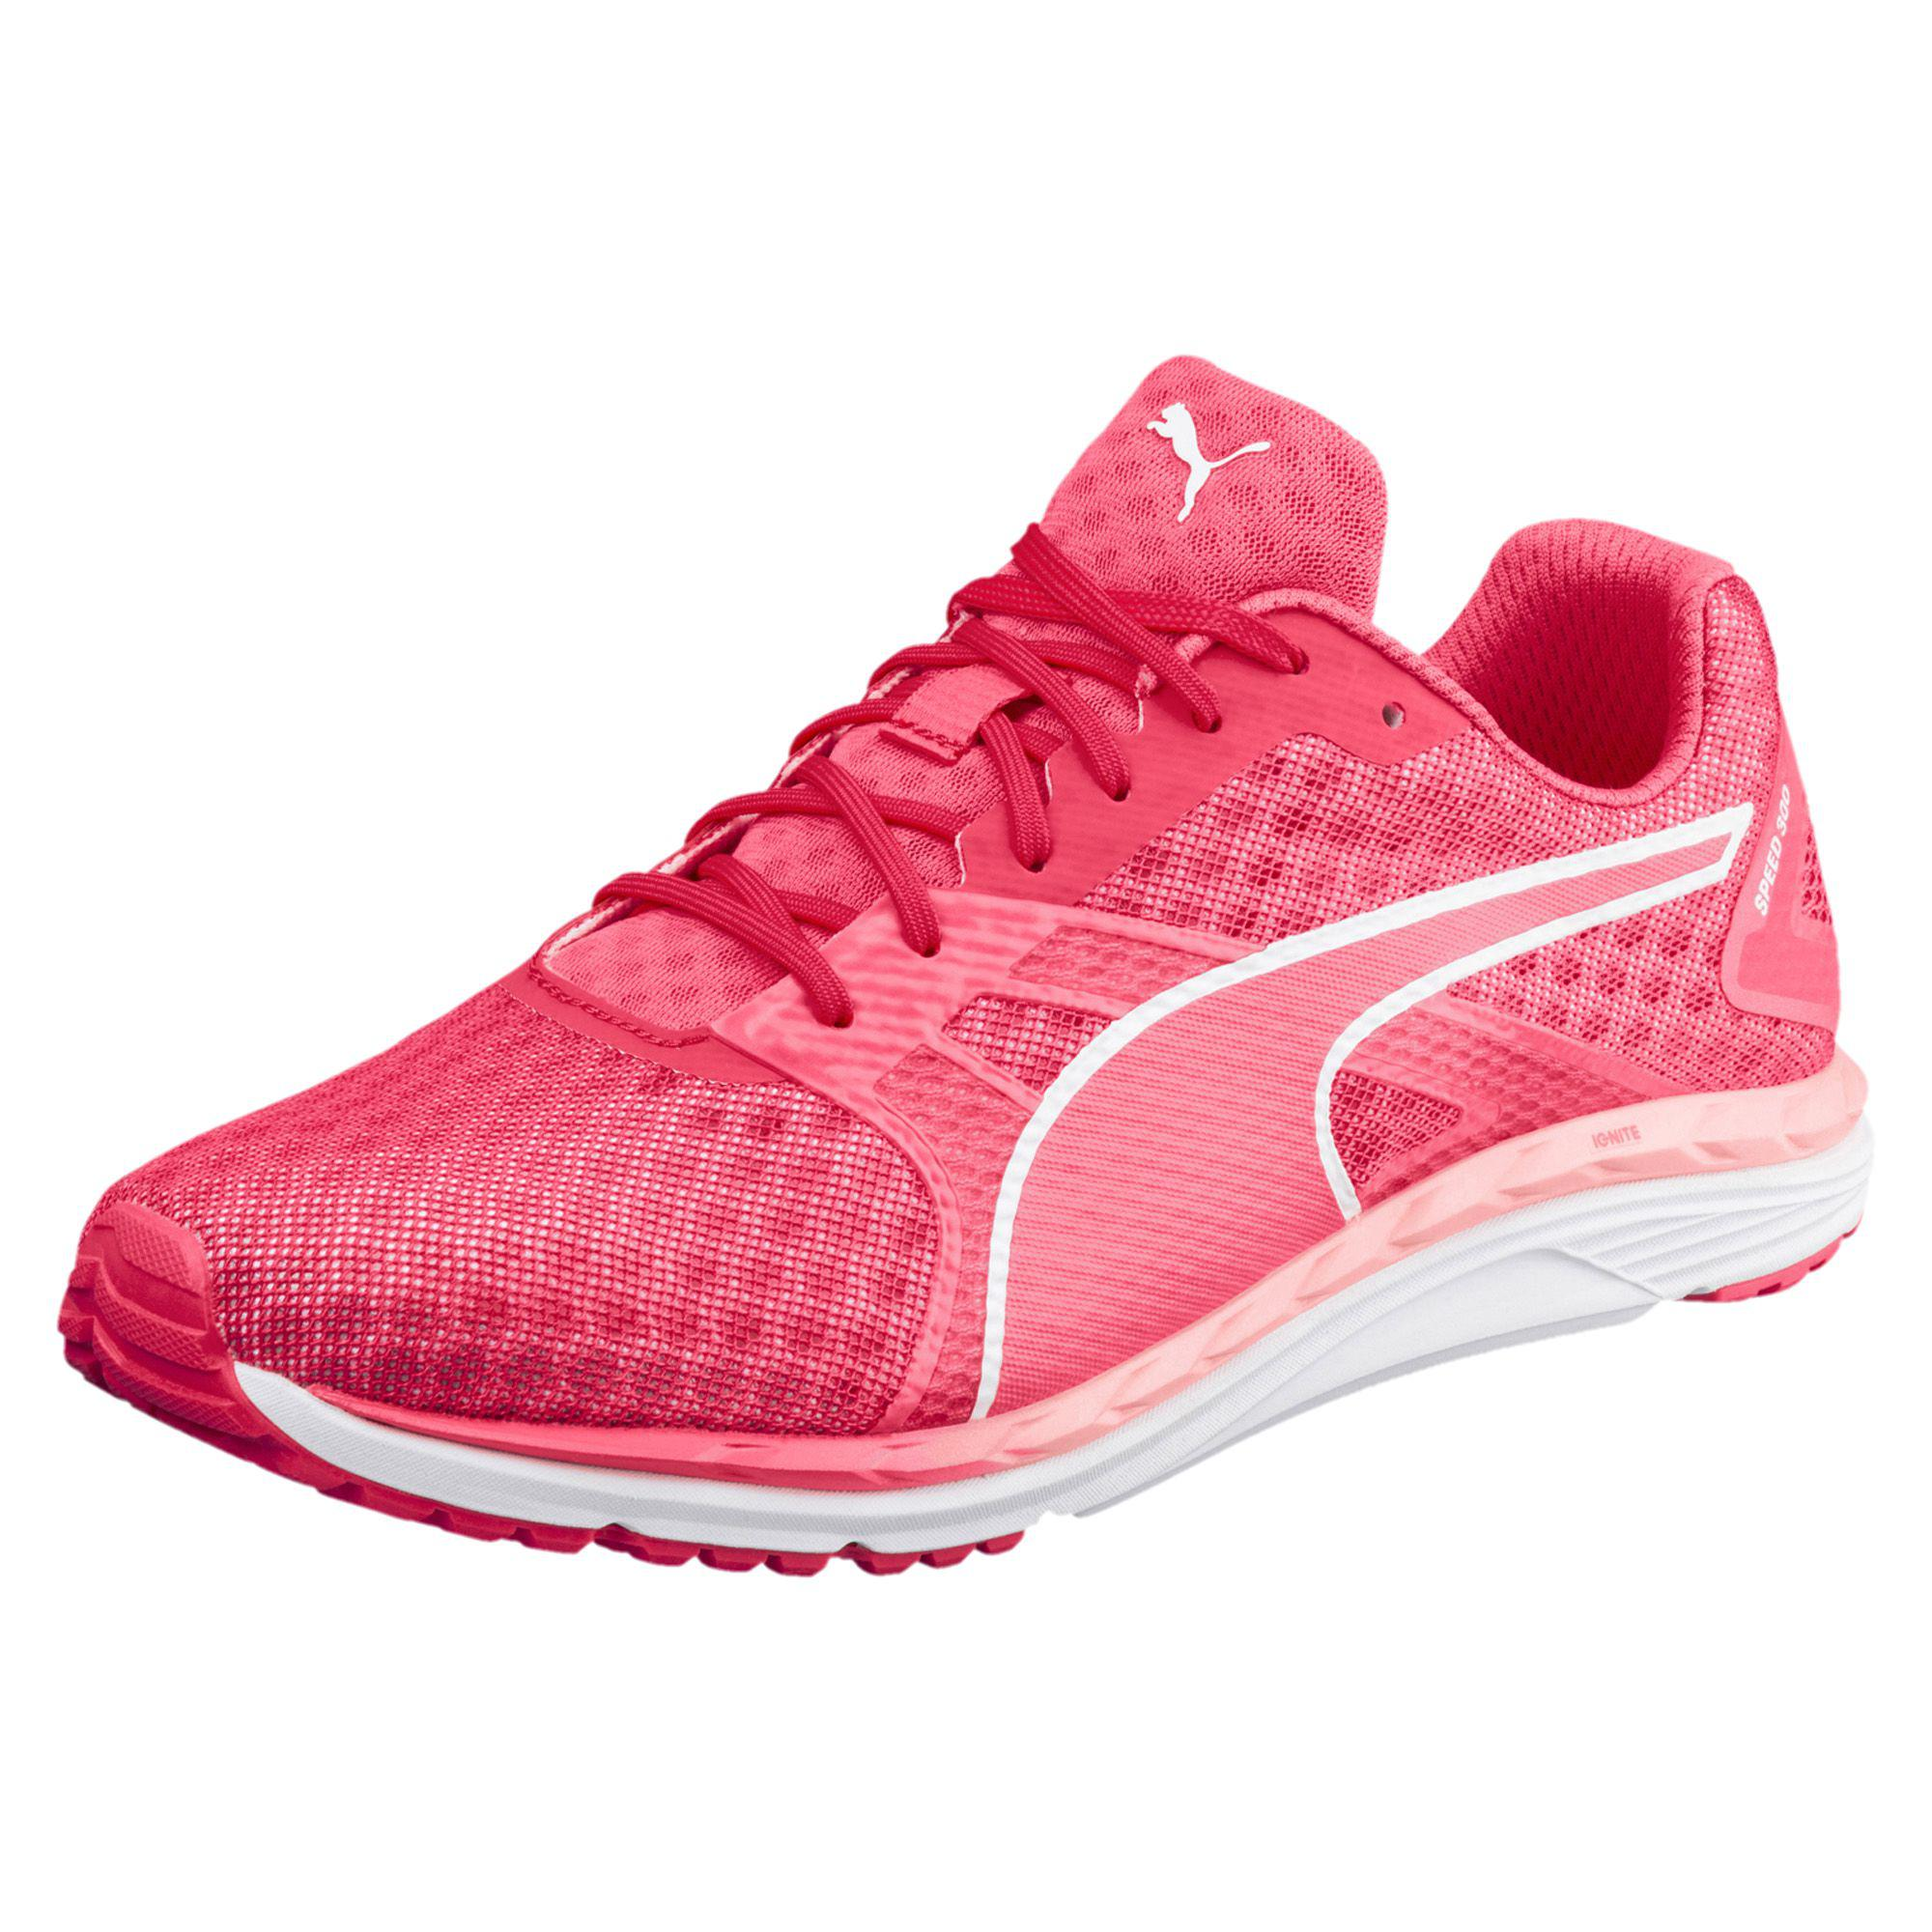 aa12be66dc7c Lyst - PUMA Speed 300 Ignite 3 Women s Running Shoes in Pink